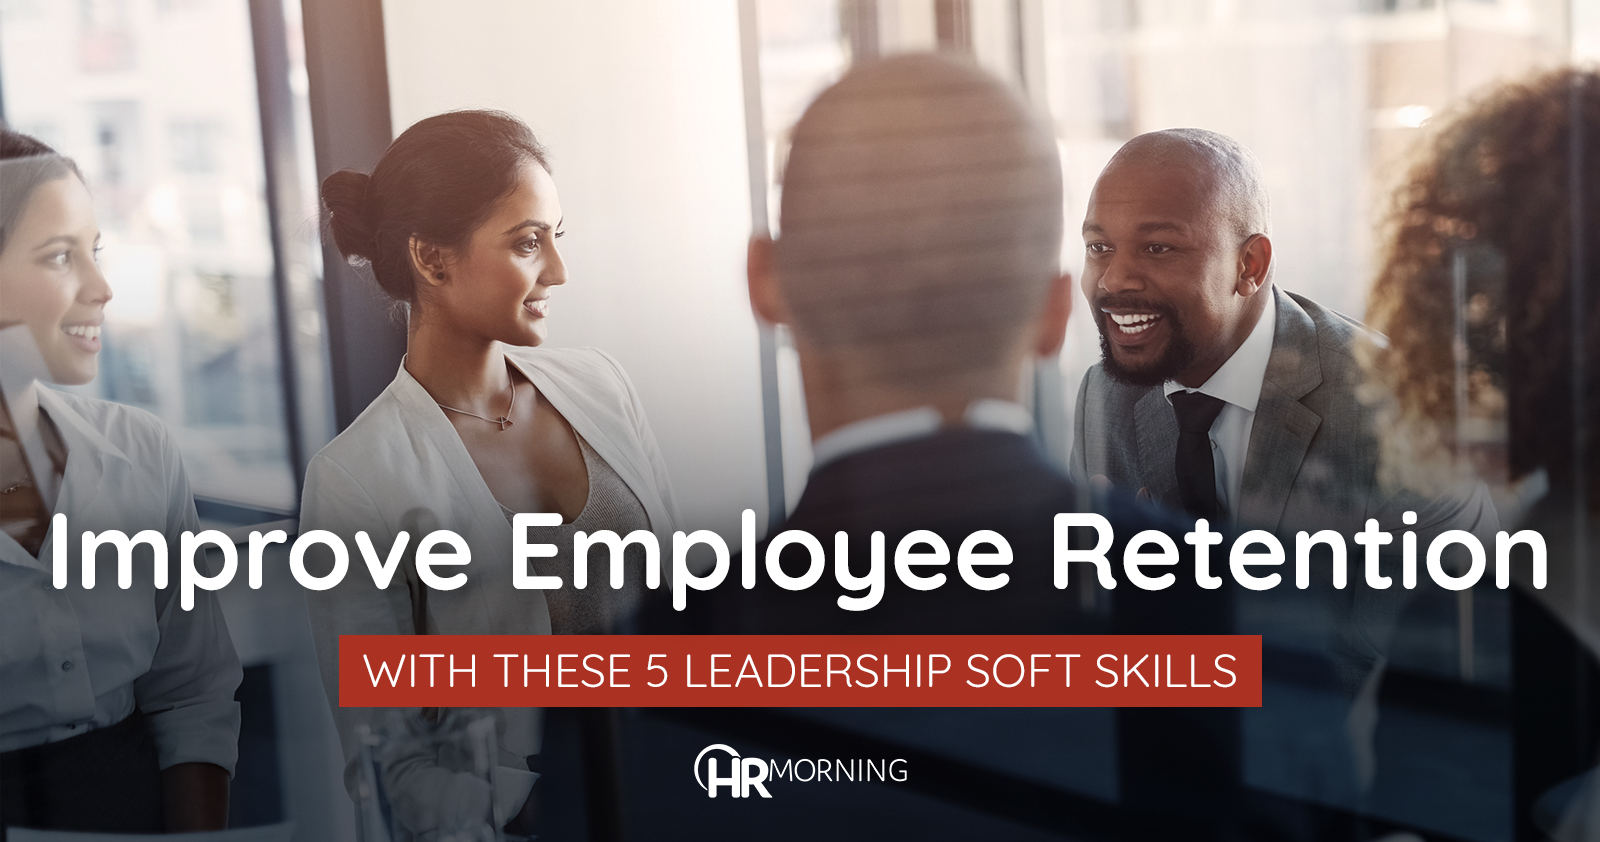 Improve Employee Retention with thee 5 leadership soft skills